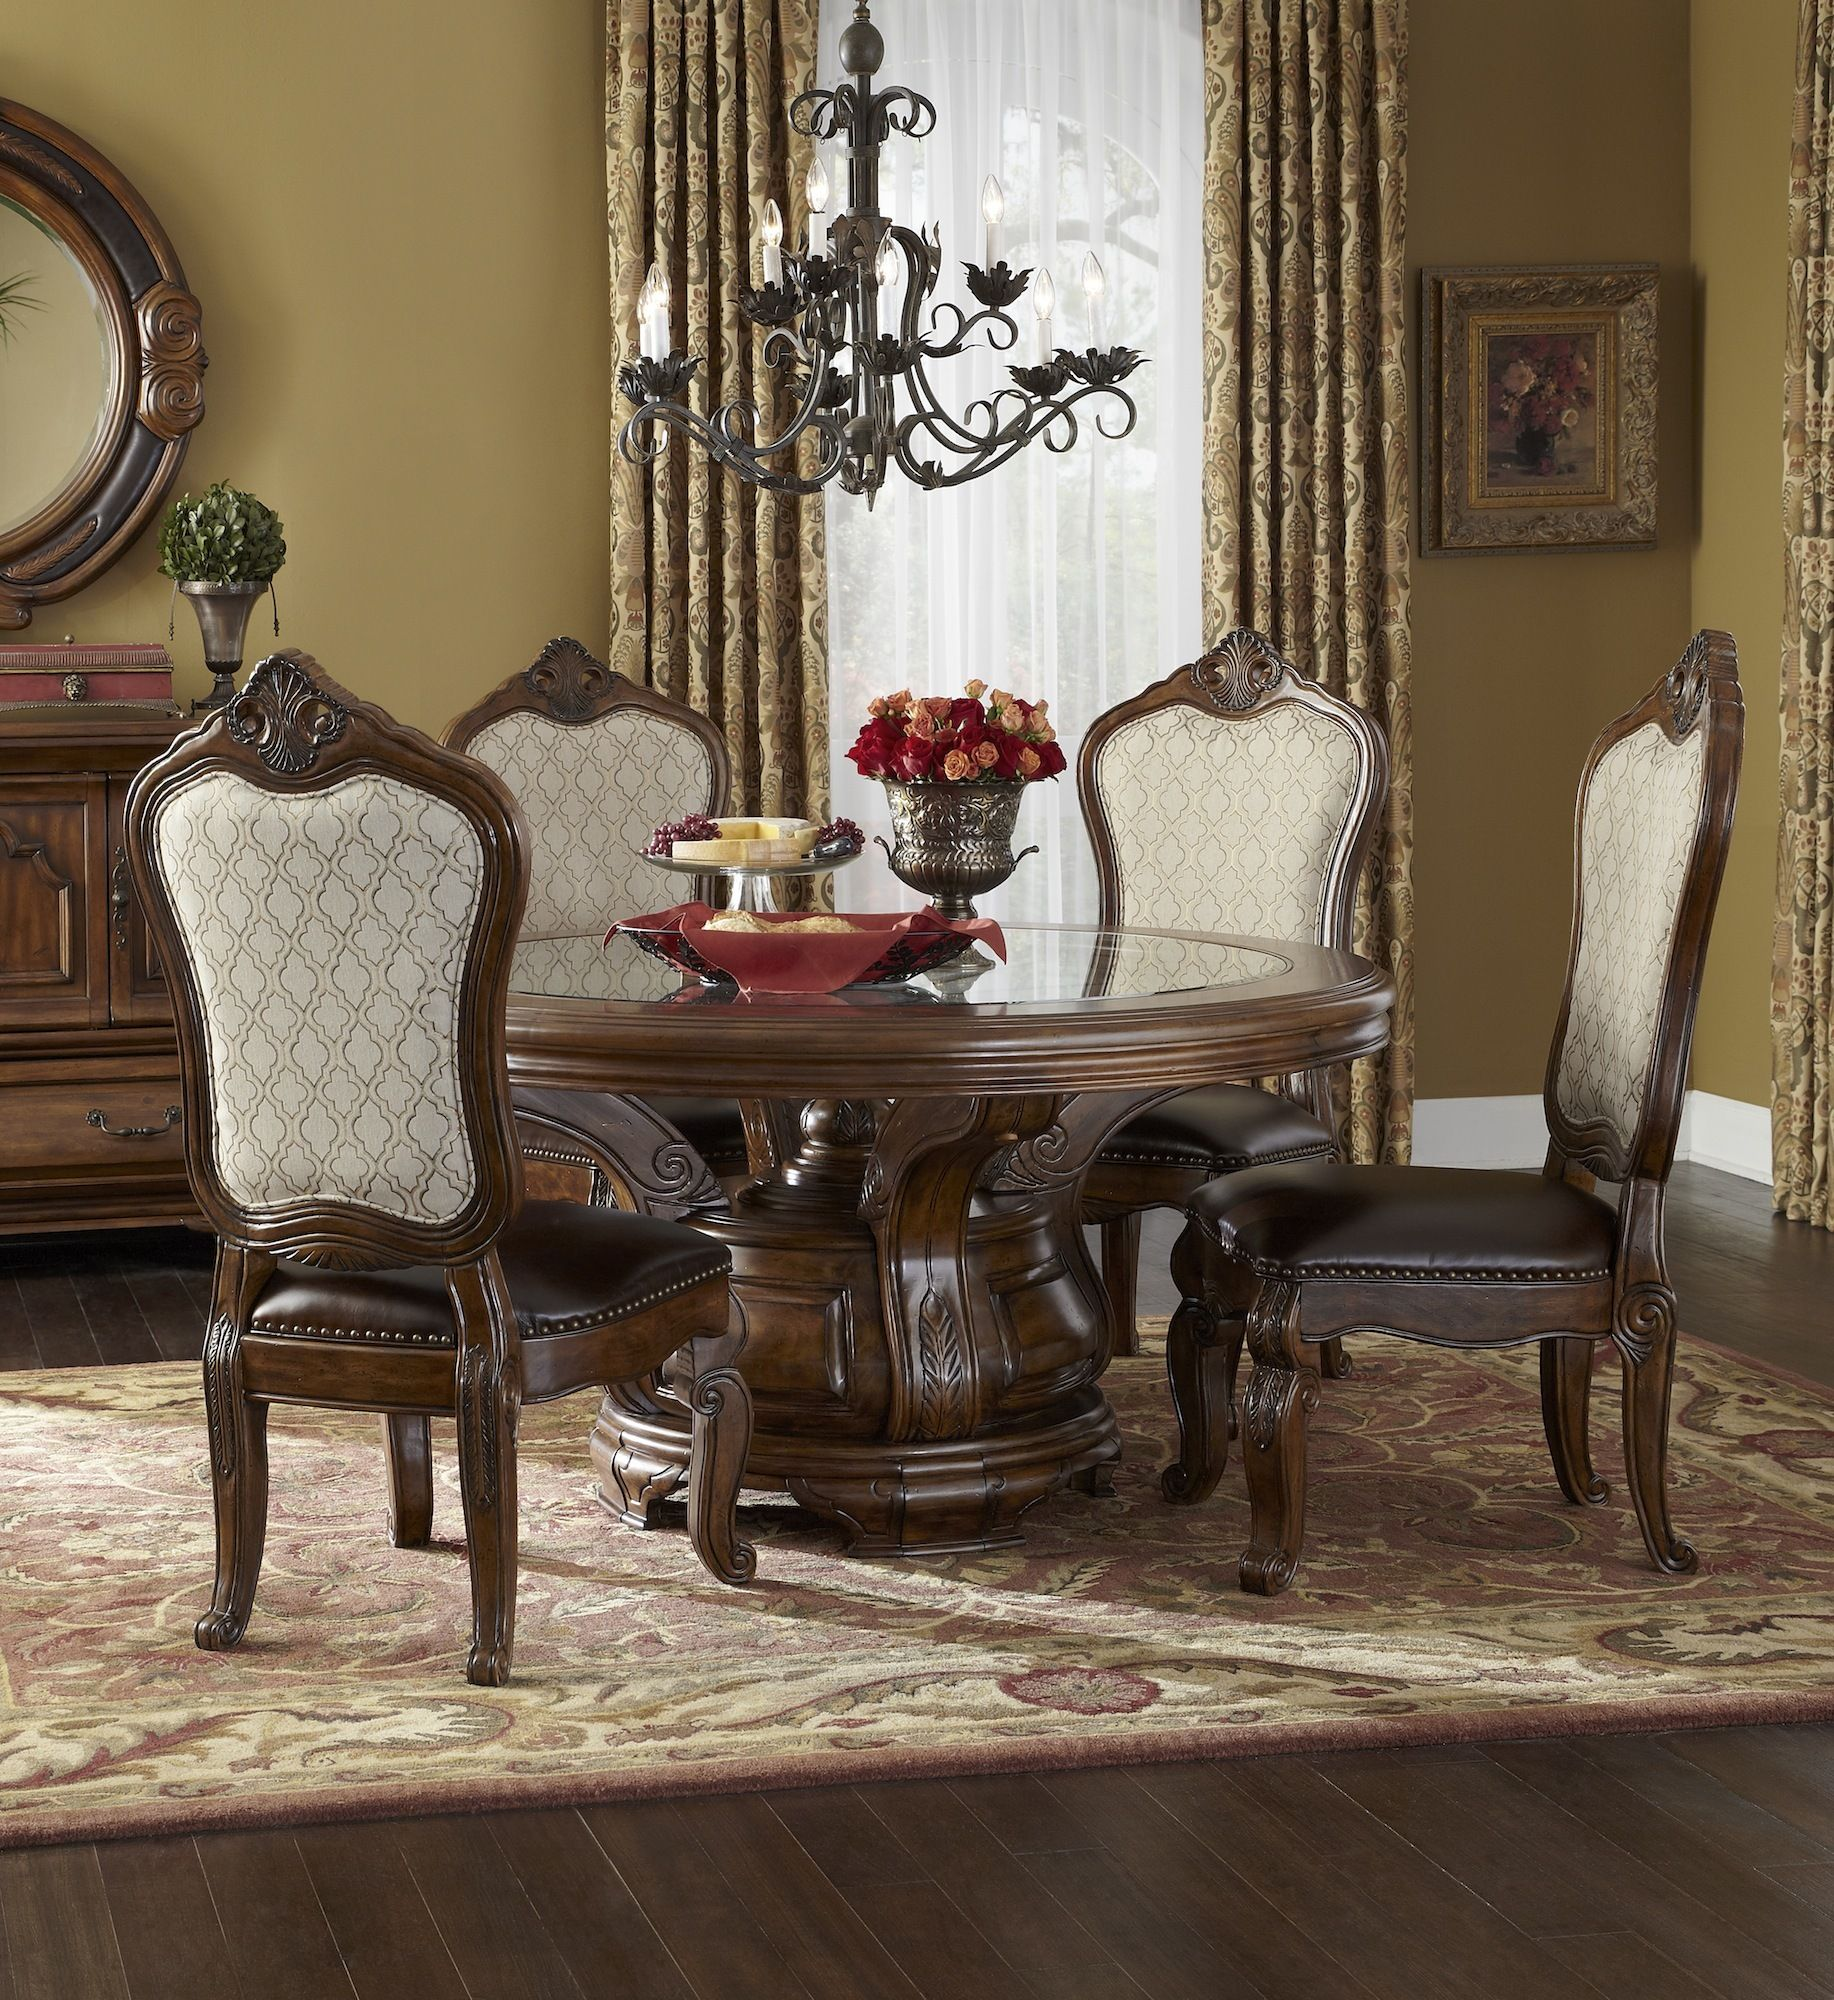 Tuscano Melange Round Pedestal Dining Room Set Aico Home Gallery Stores With Images Round Dining Room Sets Round Dining Room Table Round Dining Room